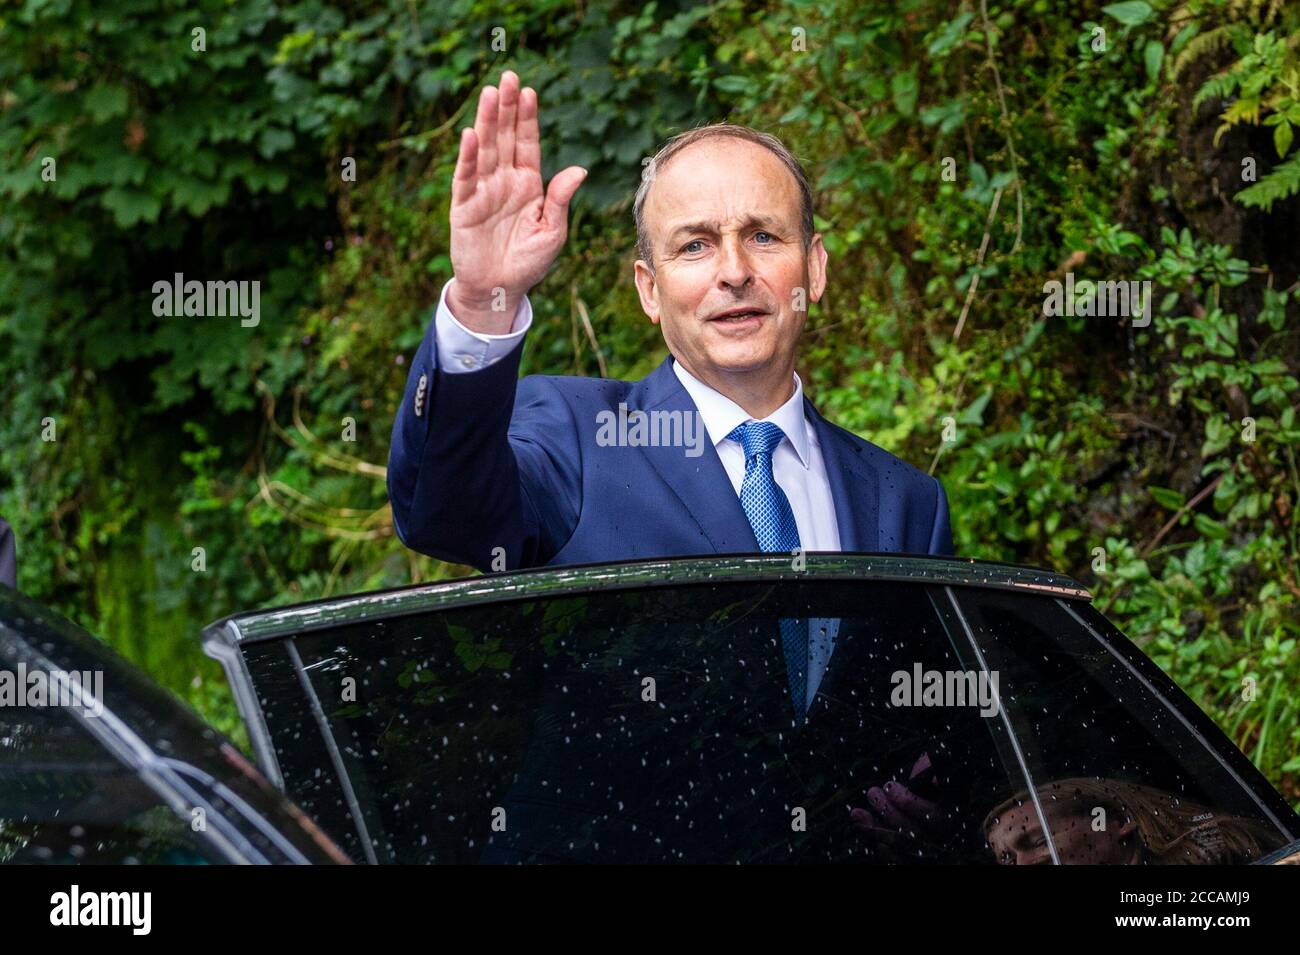 skibbereen-west-cork-ireland-20th-aug-2020-an-taoiseach-michel-martin-visited-the-victims-of-last-nights-floods-in-skibbereen-credit-ag-newsalamy-live-news-2CCAMJ9.jpg